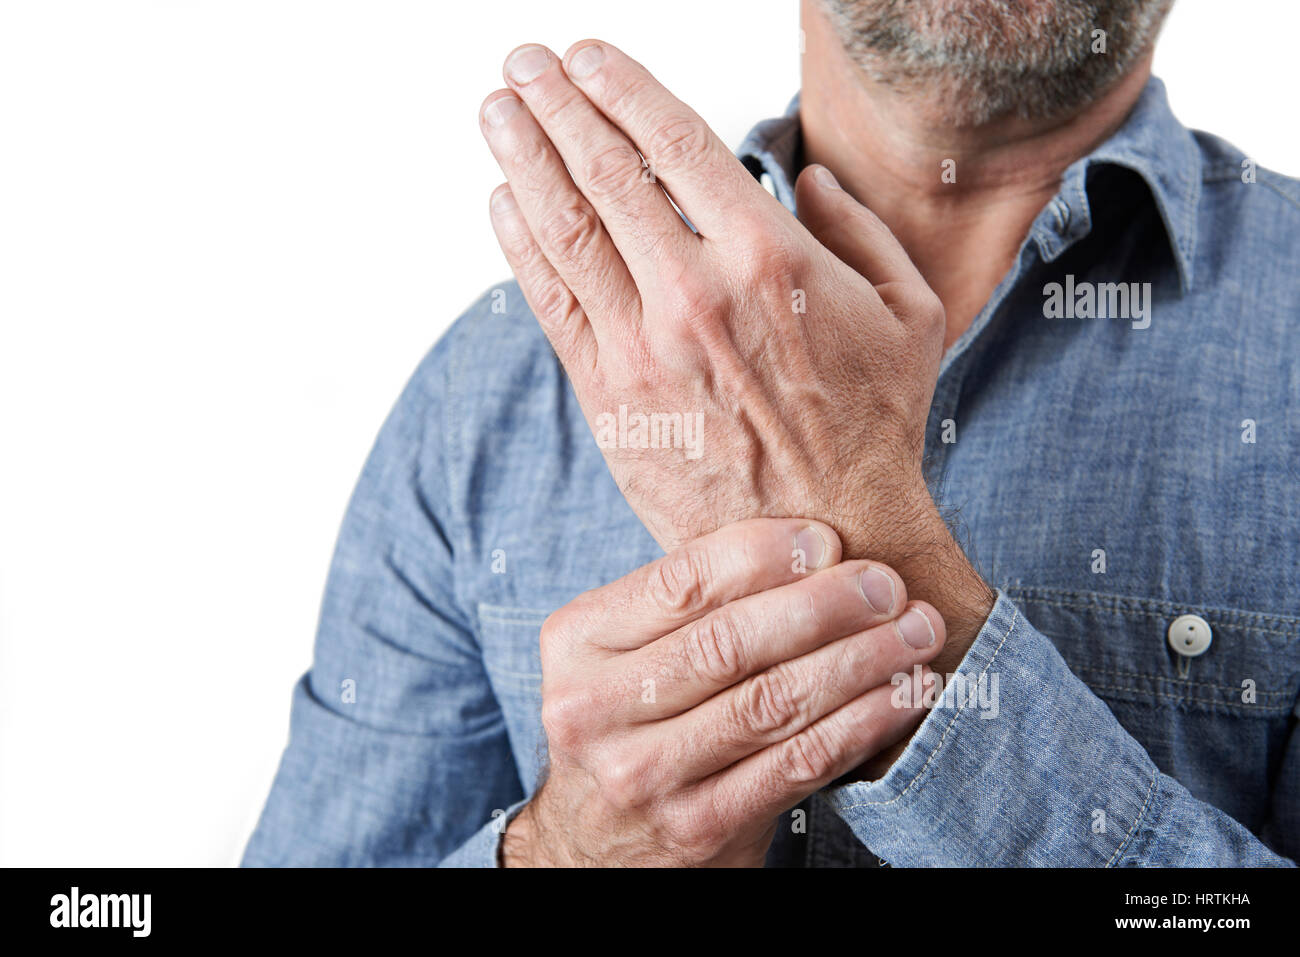 Close Up Shot Of Man Suffering With Repetitive Strain Injury - Stock Image